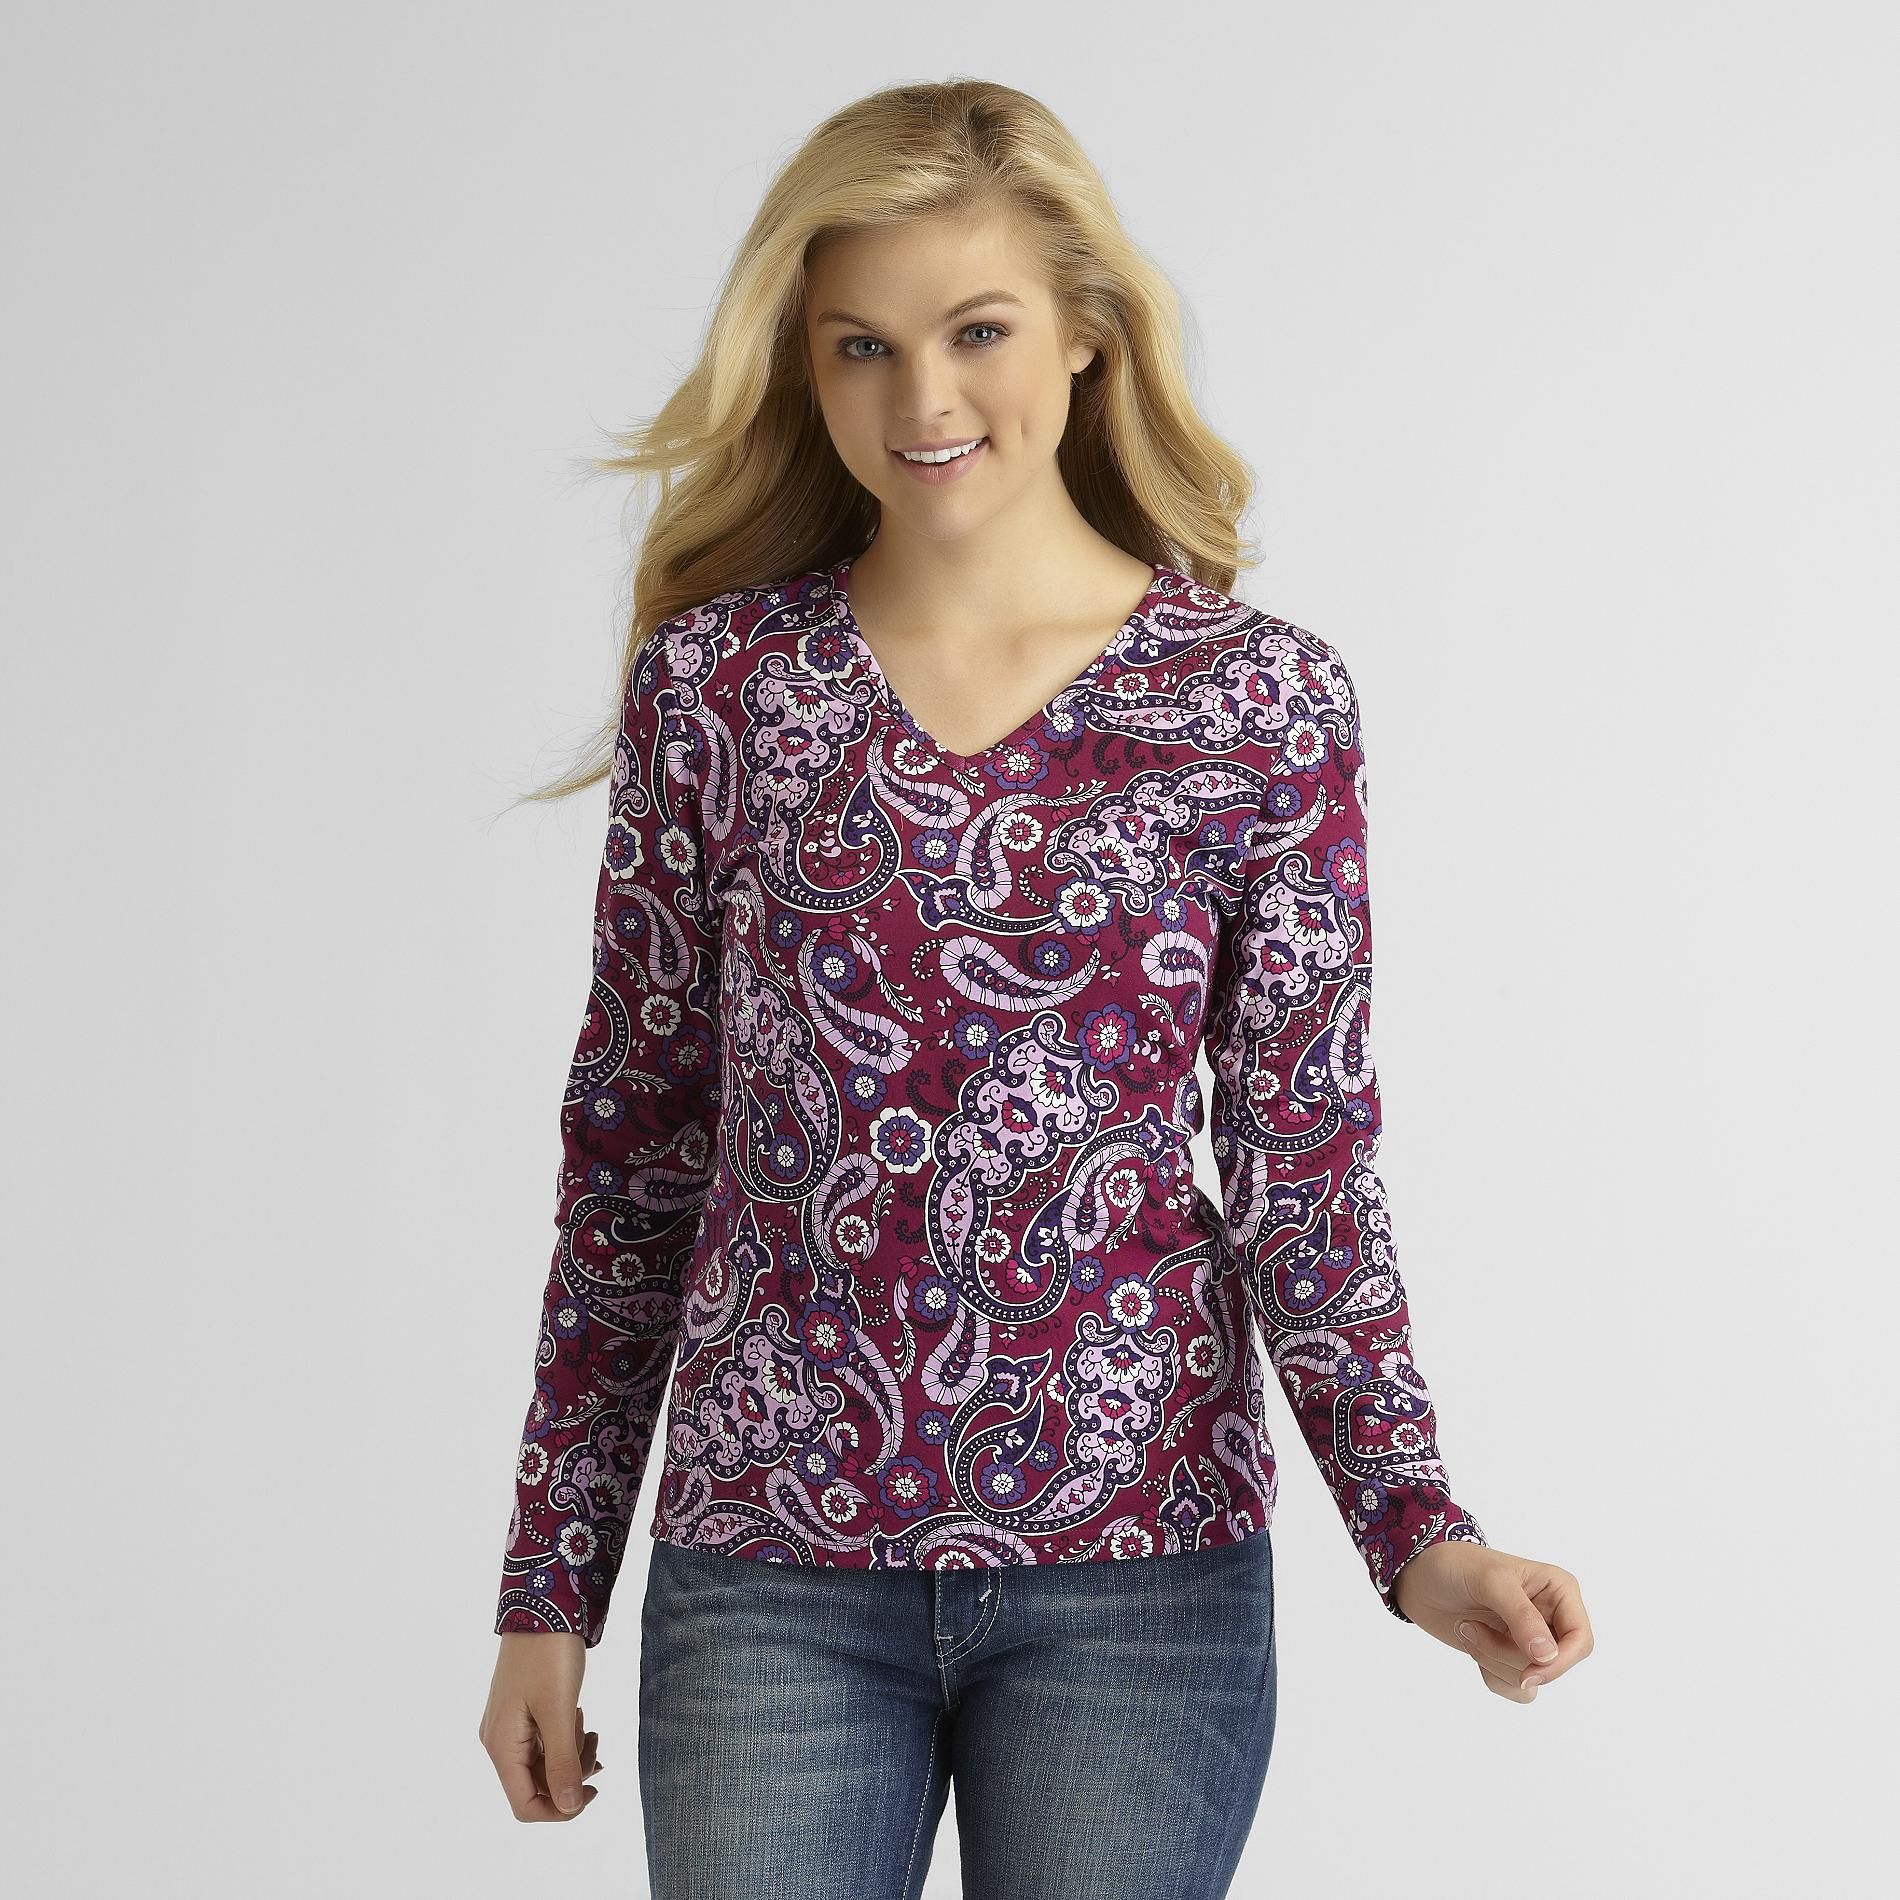 Basic Editions Women's V-Neck T-Shirt - Paisley at Kmart.com